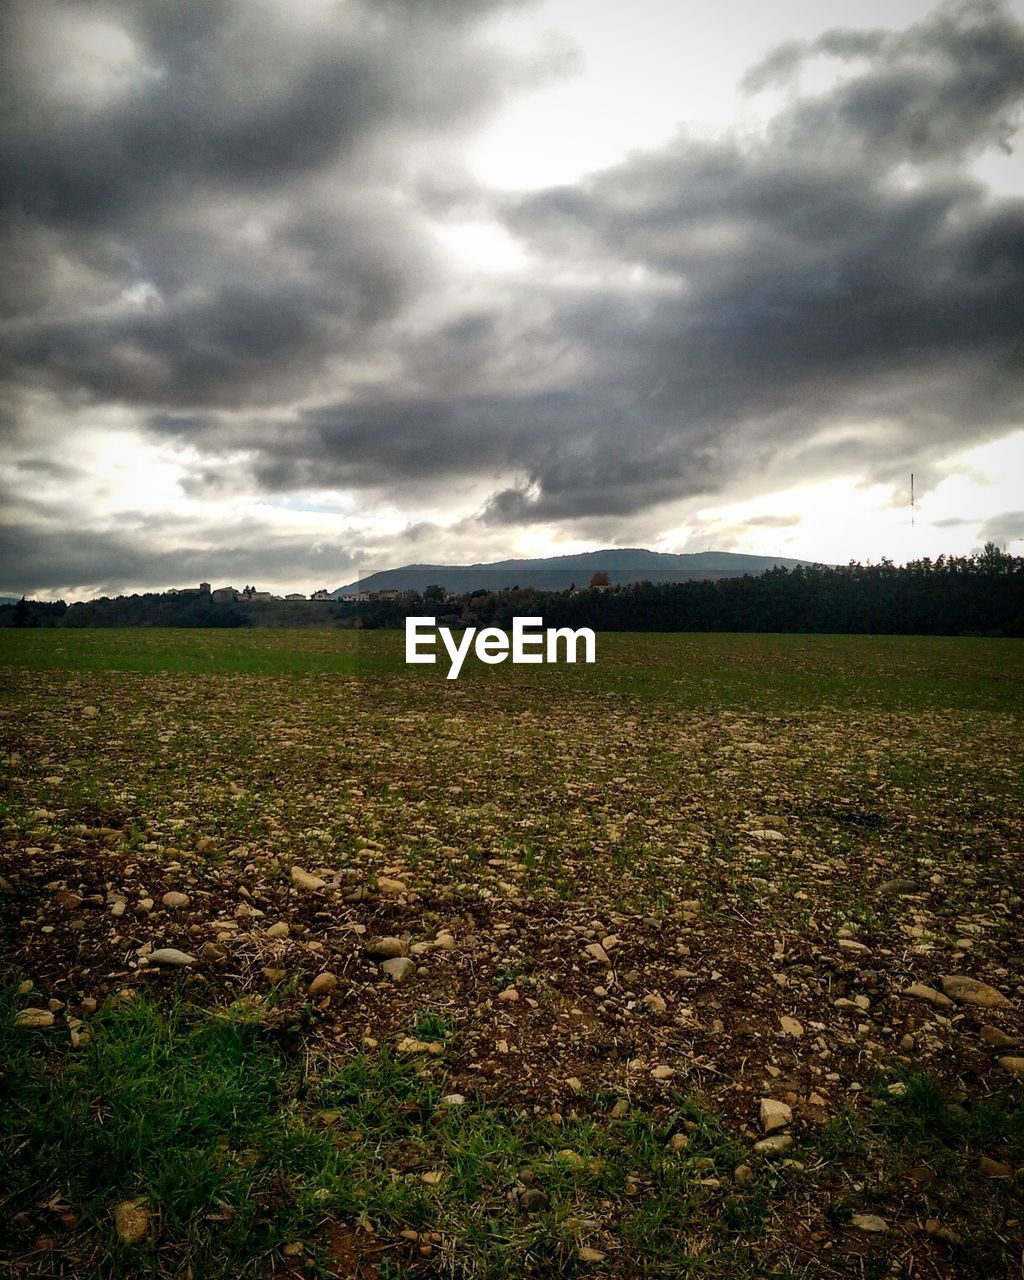 field, agriculture, tranquility, landscape, nature, sky, cloud - sky, growth, tranquil scene, scenics, farm, beauty in nature, rural scene, no people, outdoors, day, plough, storm cloud, mountain, grass, plowed field